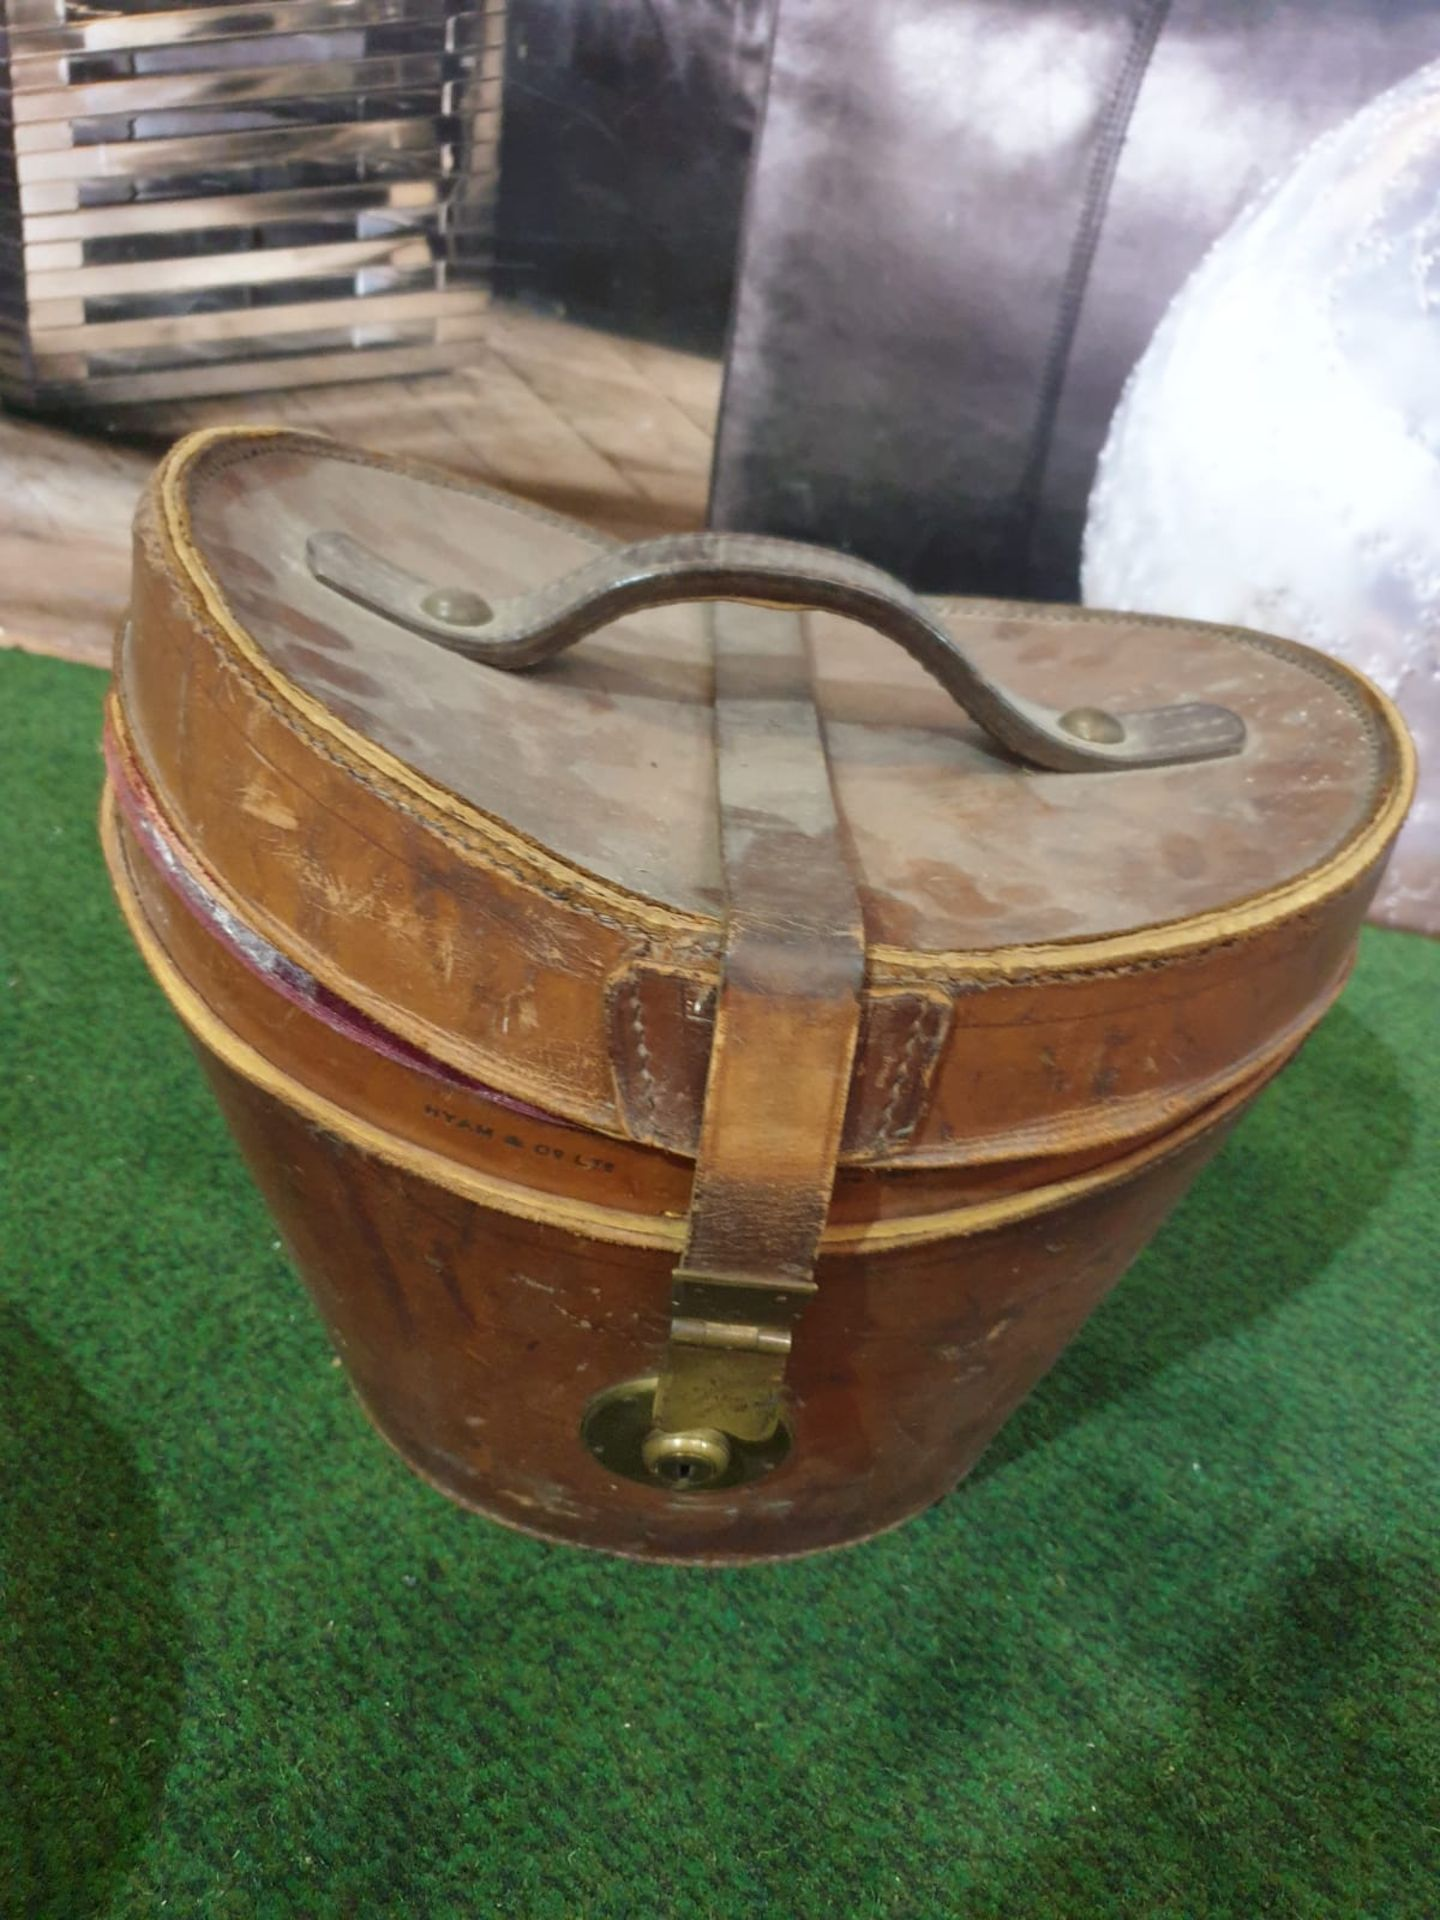 Lincoln Bennett & Co Hunters black silk Top hat in Leather case - Image 3 of 4